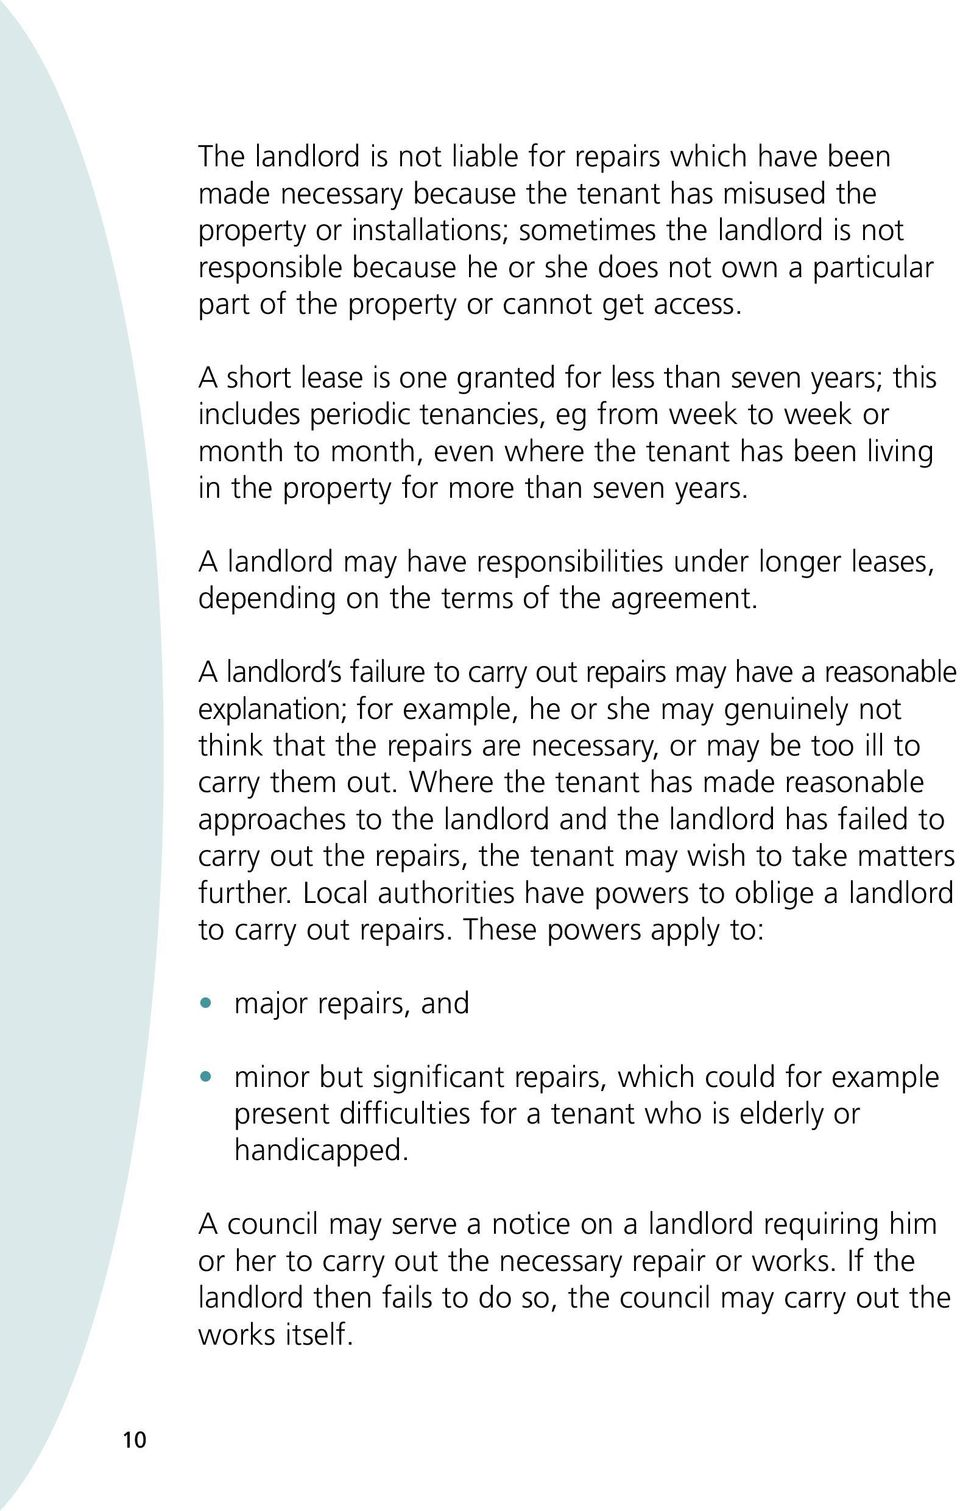 A short lease is one granted for less than seven years; this includes periodic tenancies, eg from week to week or month to month, even where the tenant has been living in the property for more than